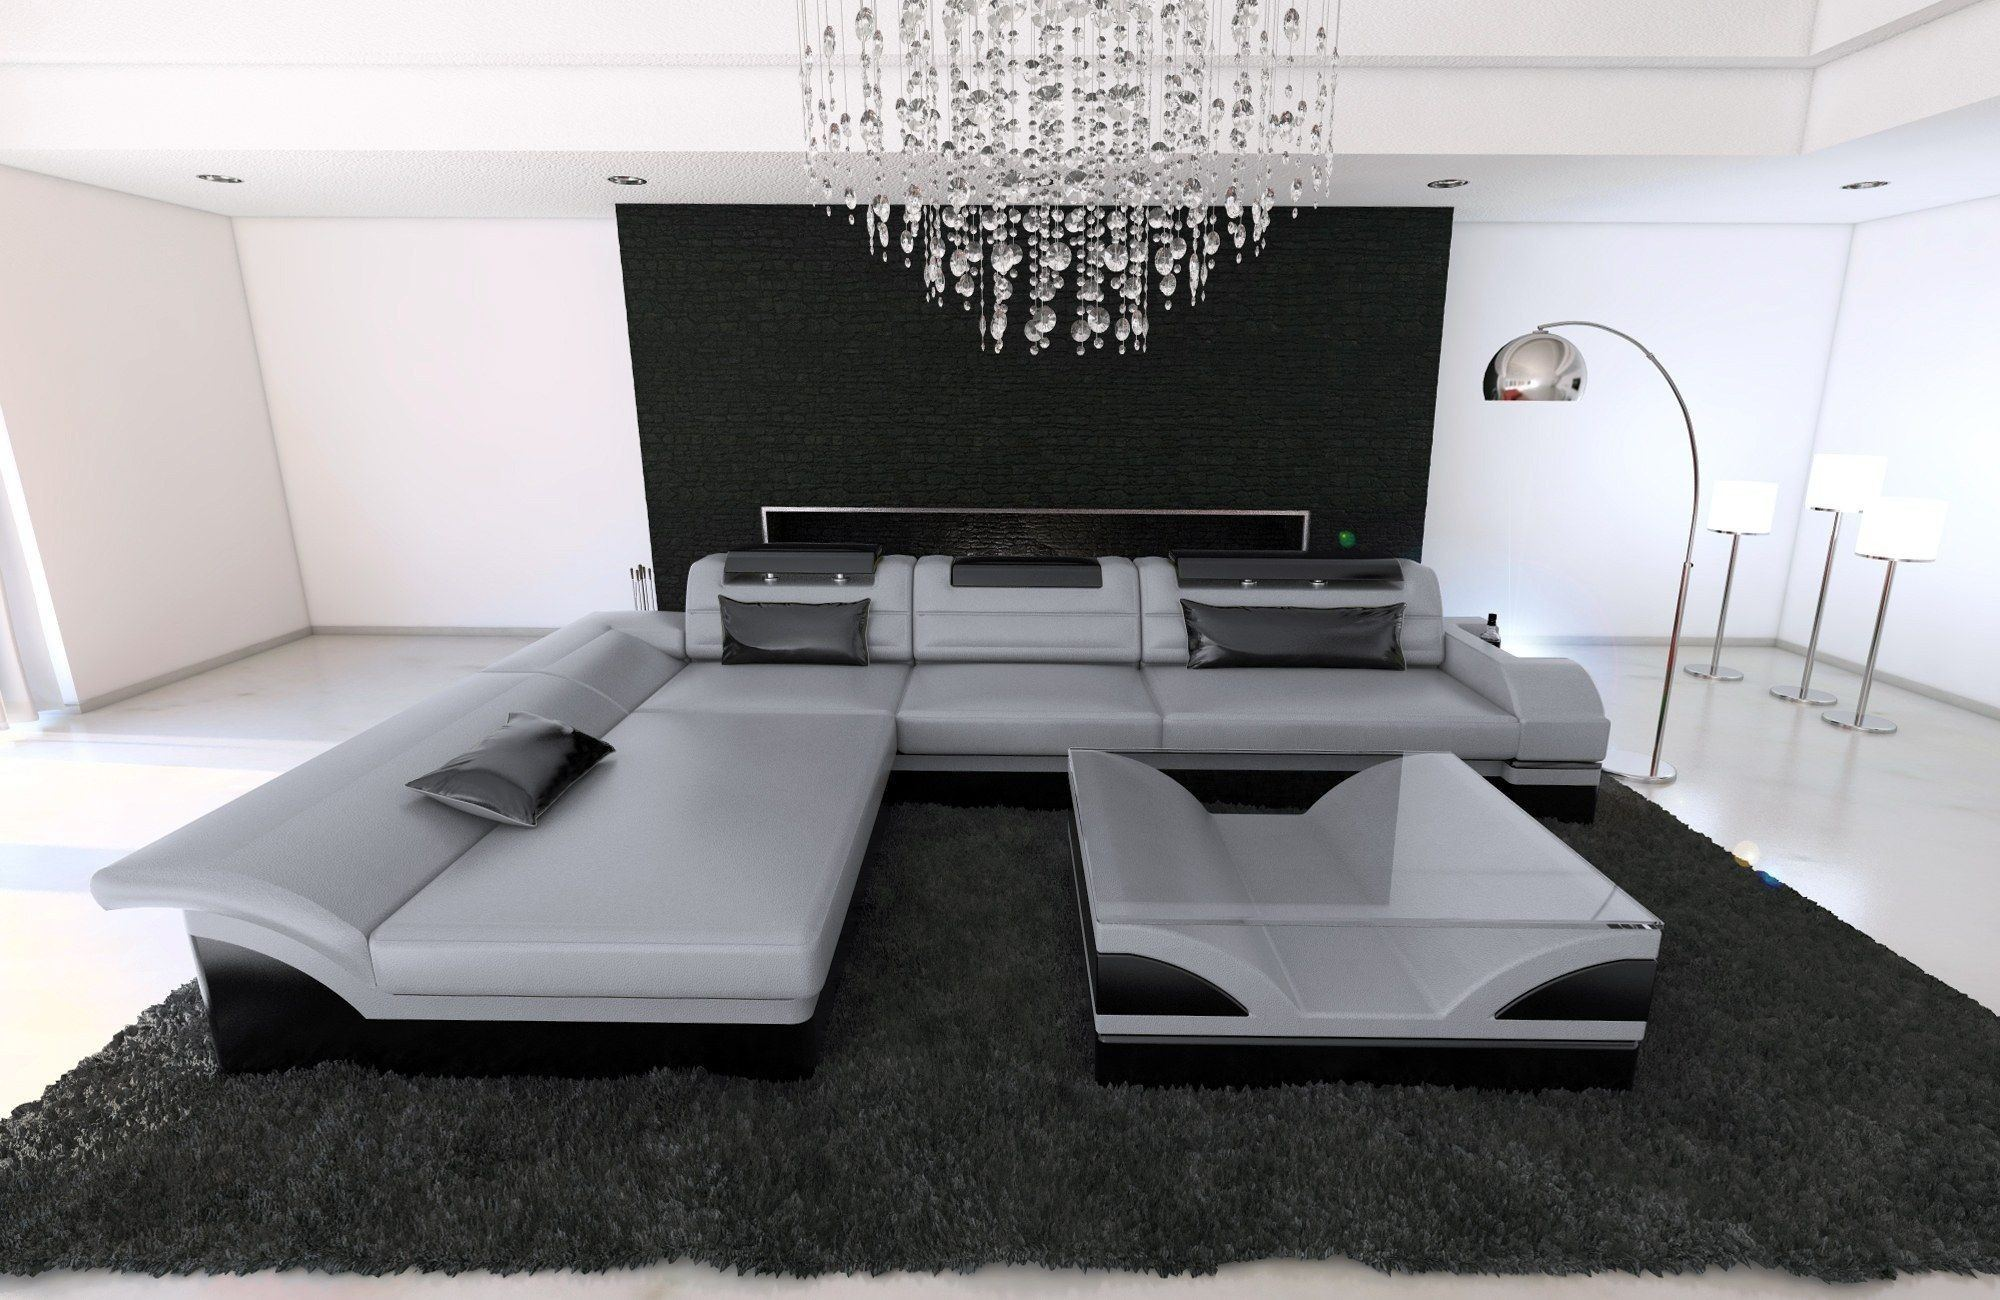 ledersofa monza l form grau schwarz. Black Bedroom Furniture Sets. Home Design Ideas